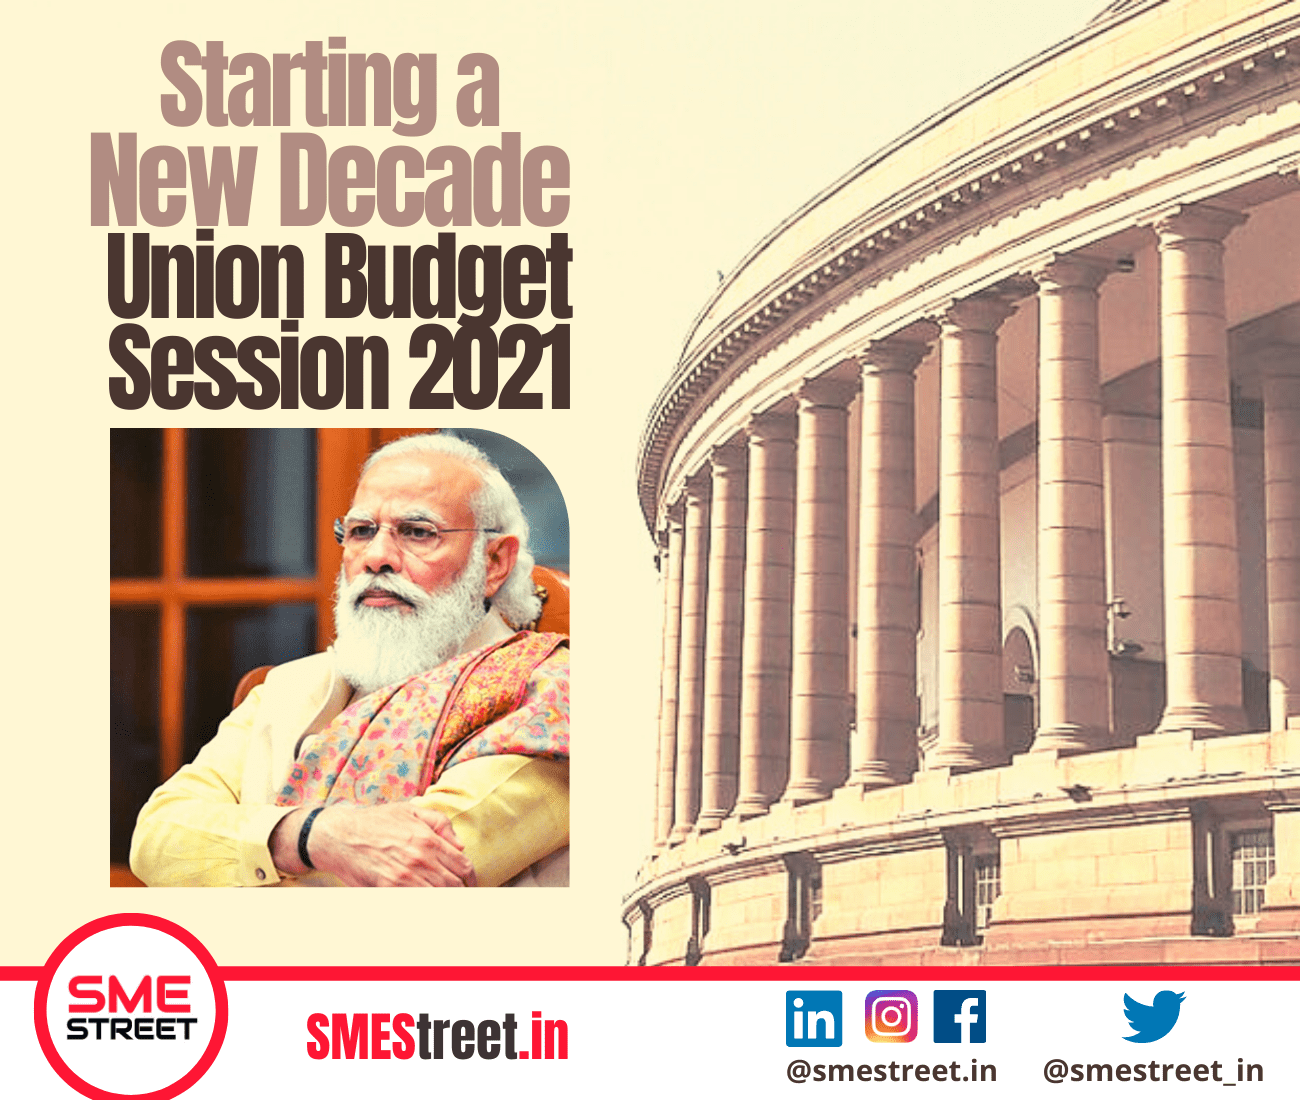 PM Modi's Message Ahead of Budget Session Highlighted Long Term Vision With Today's Action Plan